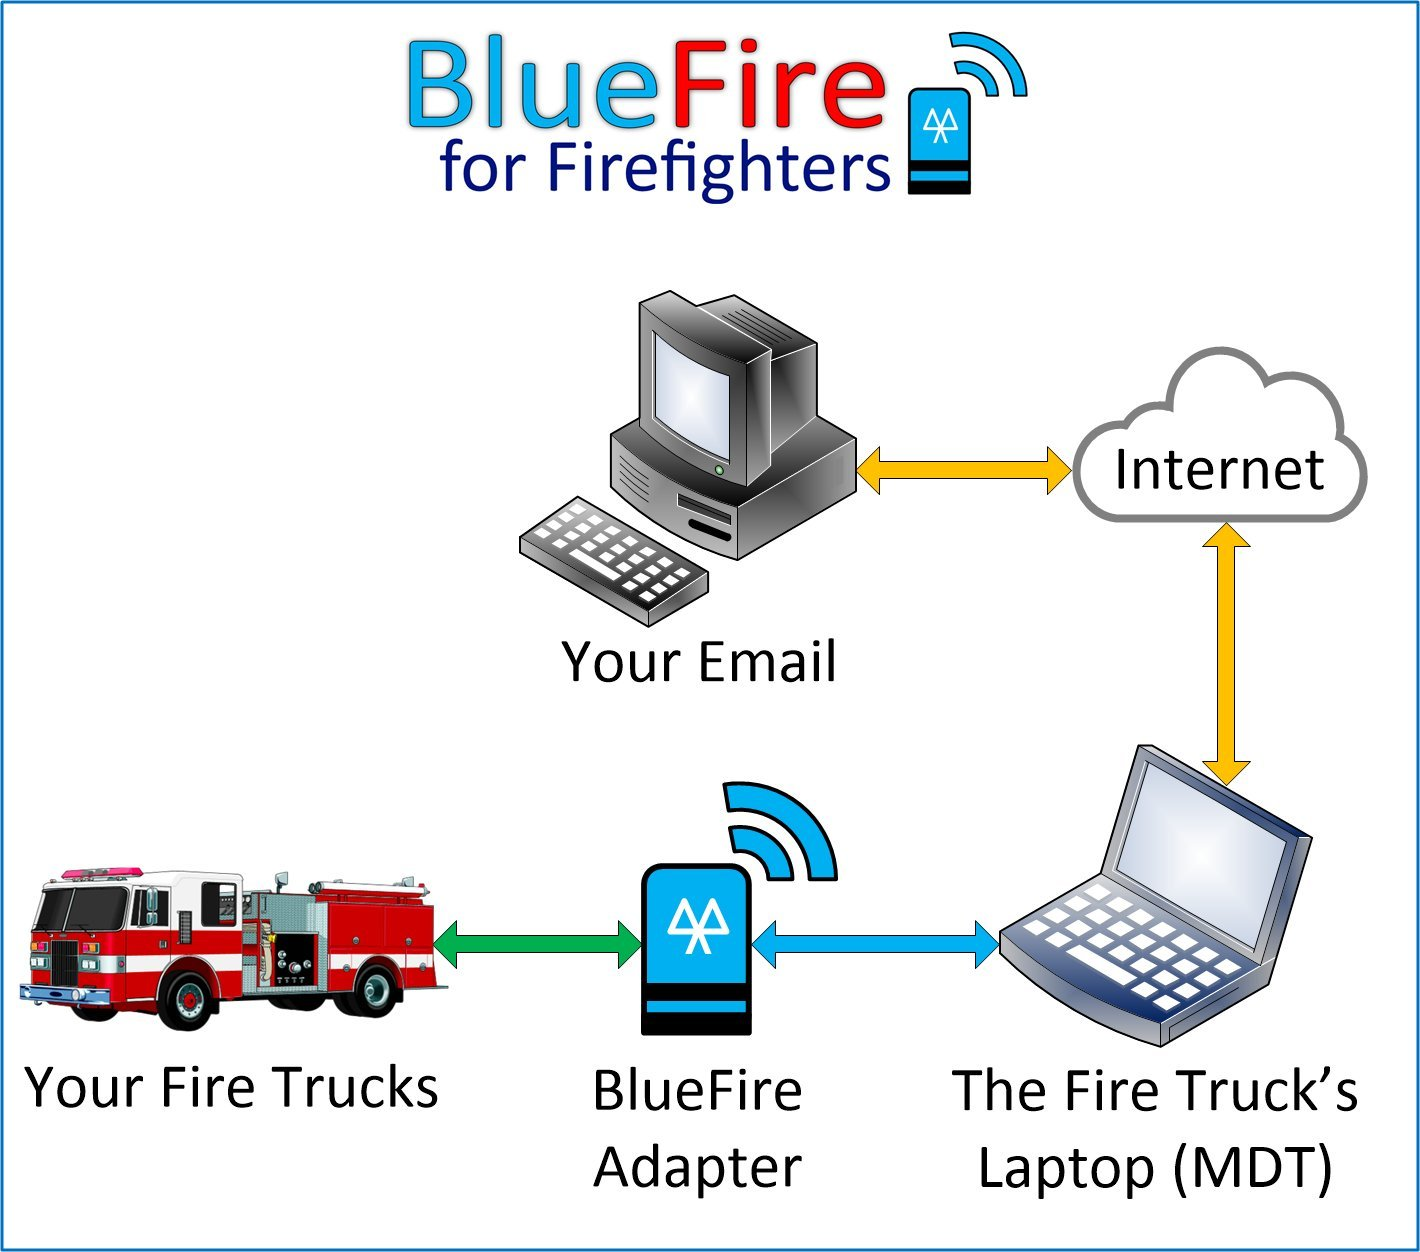 Bluefire 9 Pin J1939 J1708 Android Bluetooth Data Obc2 To Wiring Diagram Adapter For Heavy Duty Trucks Fire Motorhomes School Buses And More